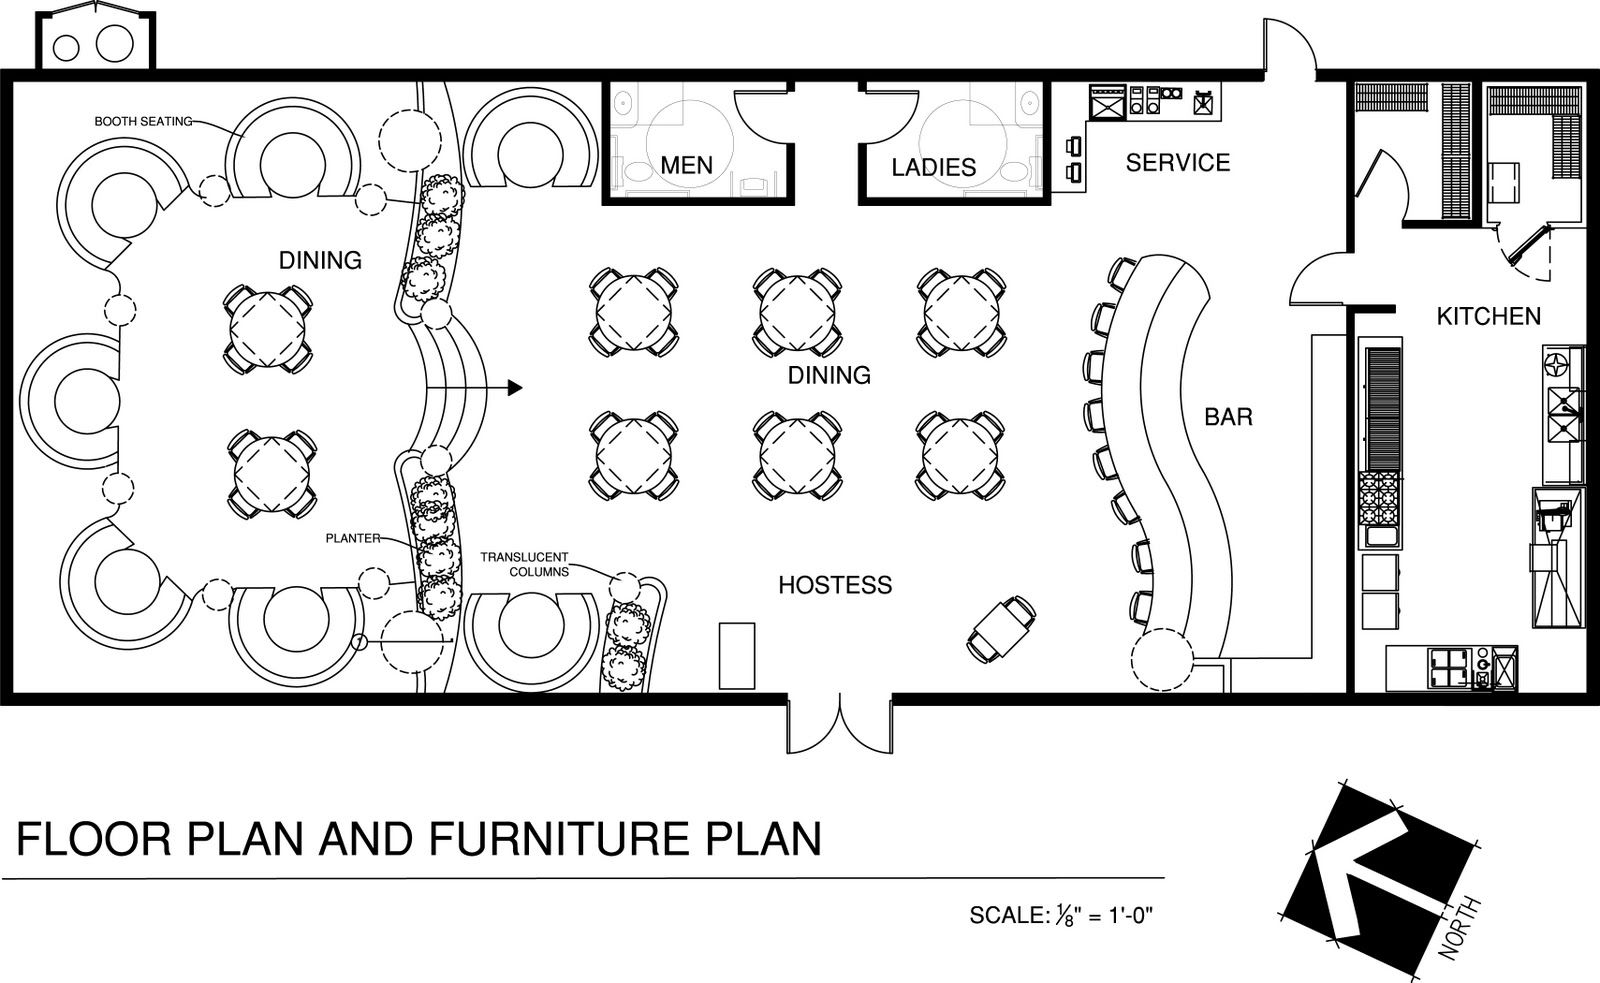 Design restaurant floor plan fresh furniture idea upper for Design your own restaurant floor plan